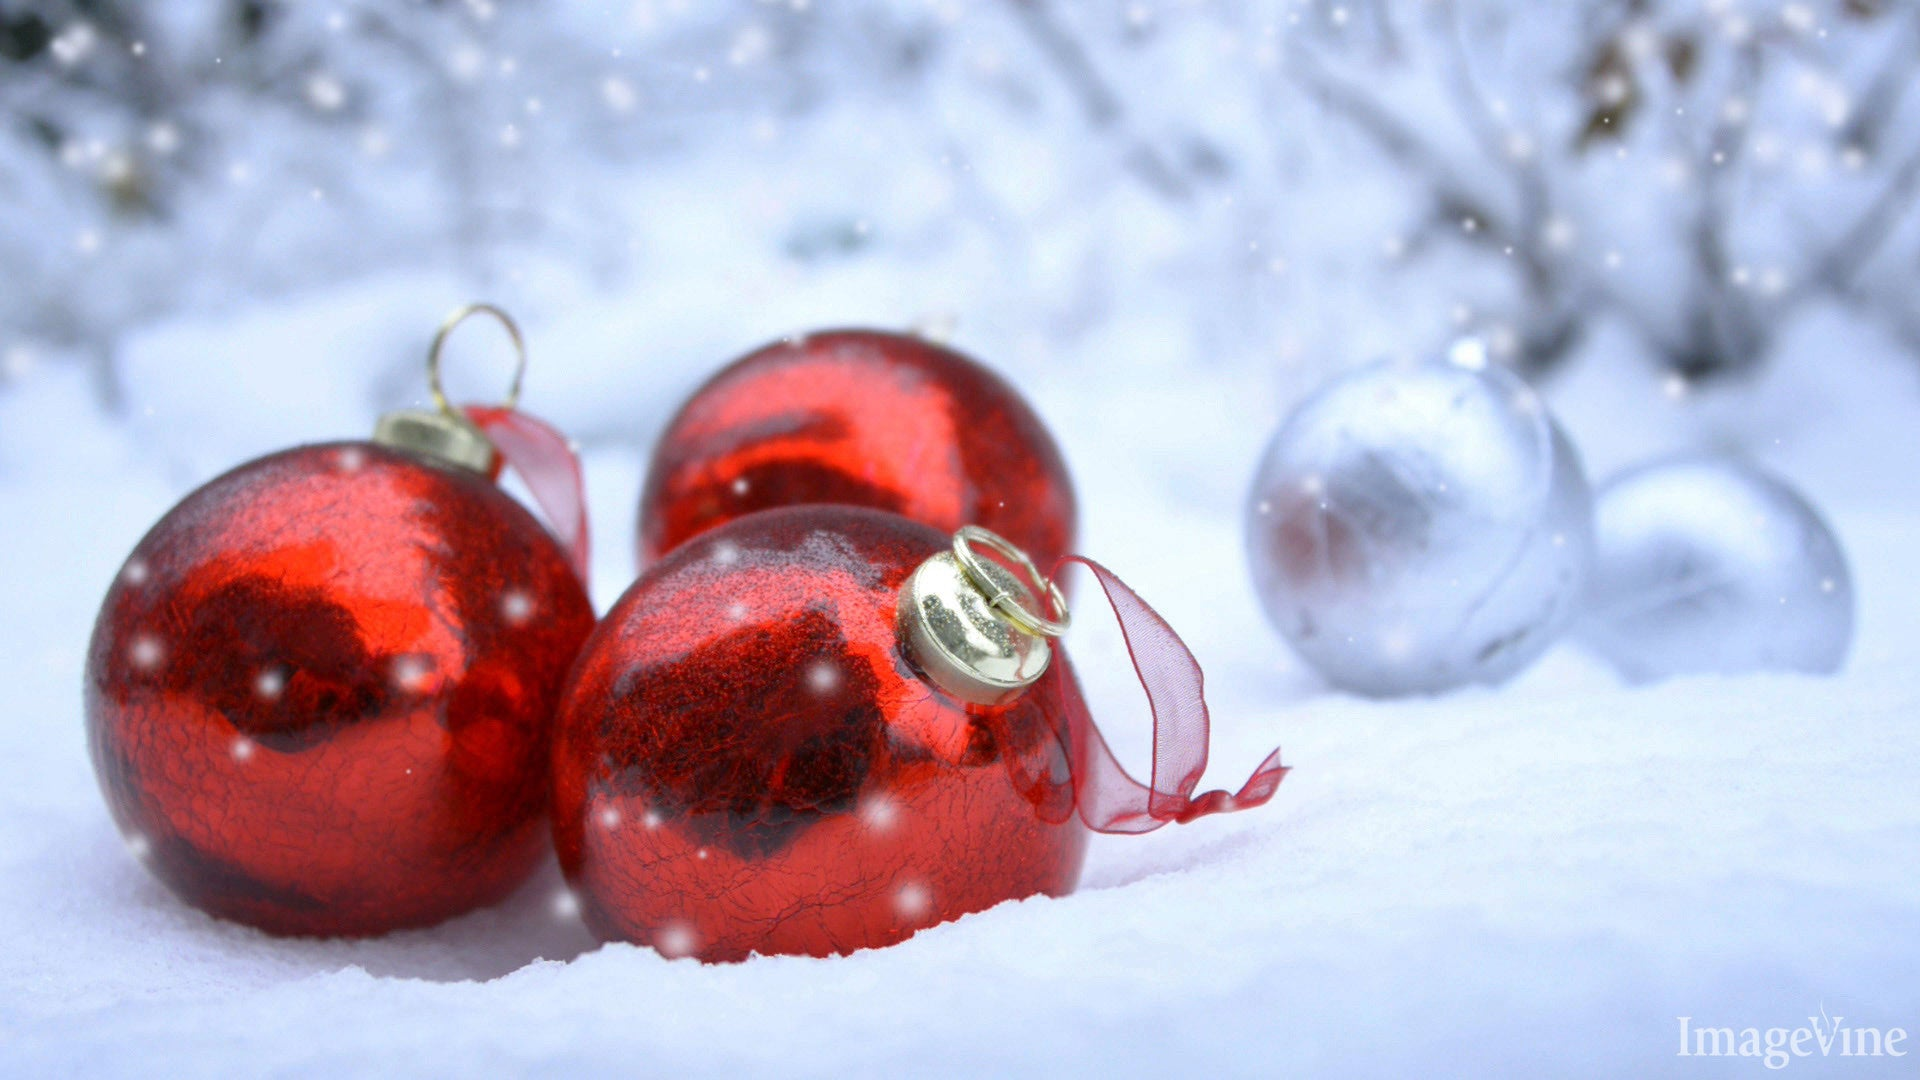 christian christmas images, red ornaments, deck the halls, snow